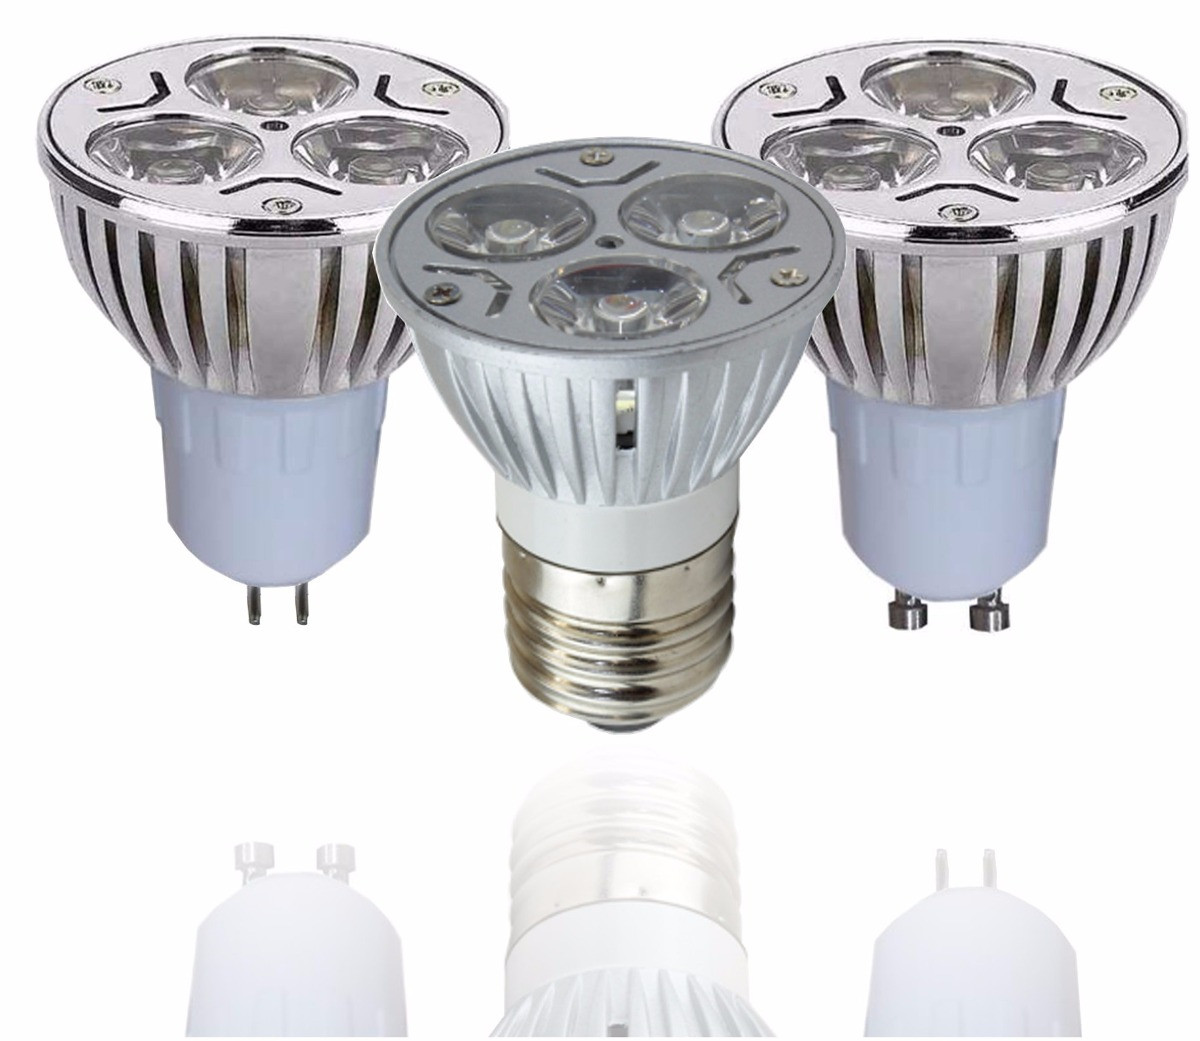 Focos Led Empotrables Extraplanos Contemporáneo Foco Led Dicroico E27 Y Mr16 De 3w 127 Watts $ 35 00 En Of Focos Led Empotrables Extraplanos Gran Foco Led Alta Poten 20w Energy Ii Detect